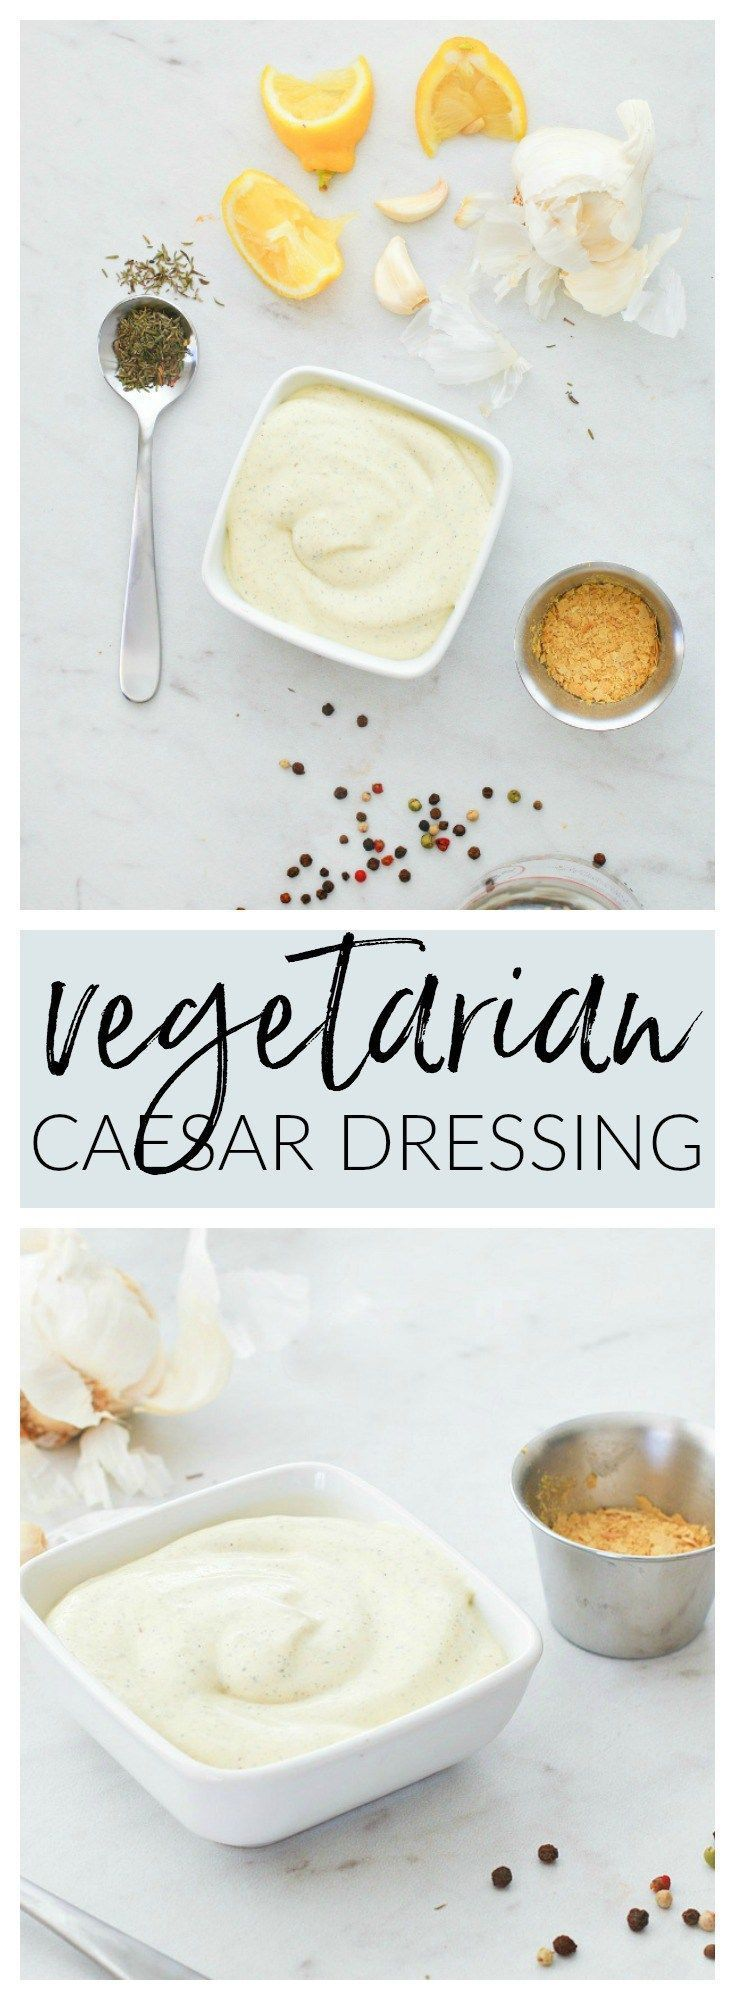 Healthy Homemade Vegetarian Caesar Dressing replaces the usual anchovies and parmesan with vegetarian-friendly ingredients for a smooth and creamy guilt-free dressing or dip | Killing Thyme #homemade #caesardressing #caesarsalad #saladdressing #healthyrecipes #condiments #capers #nutritionalyeast #vegetarian #vegetarianrecipes